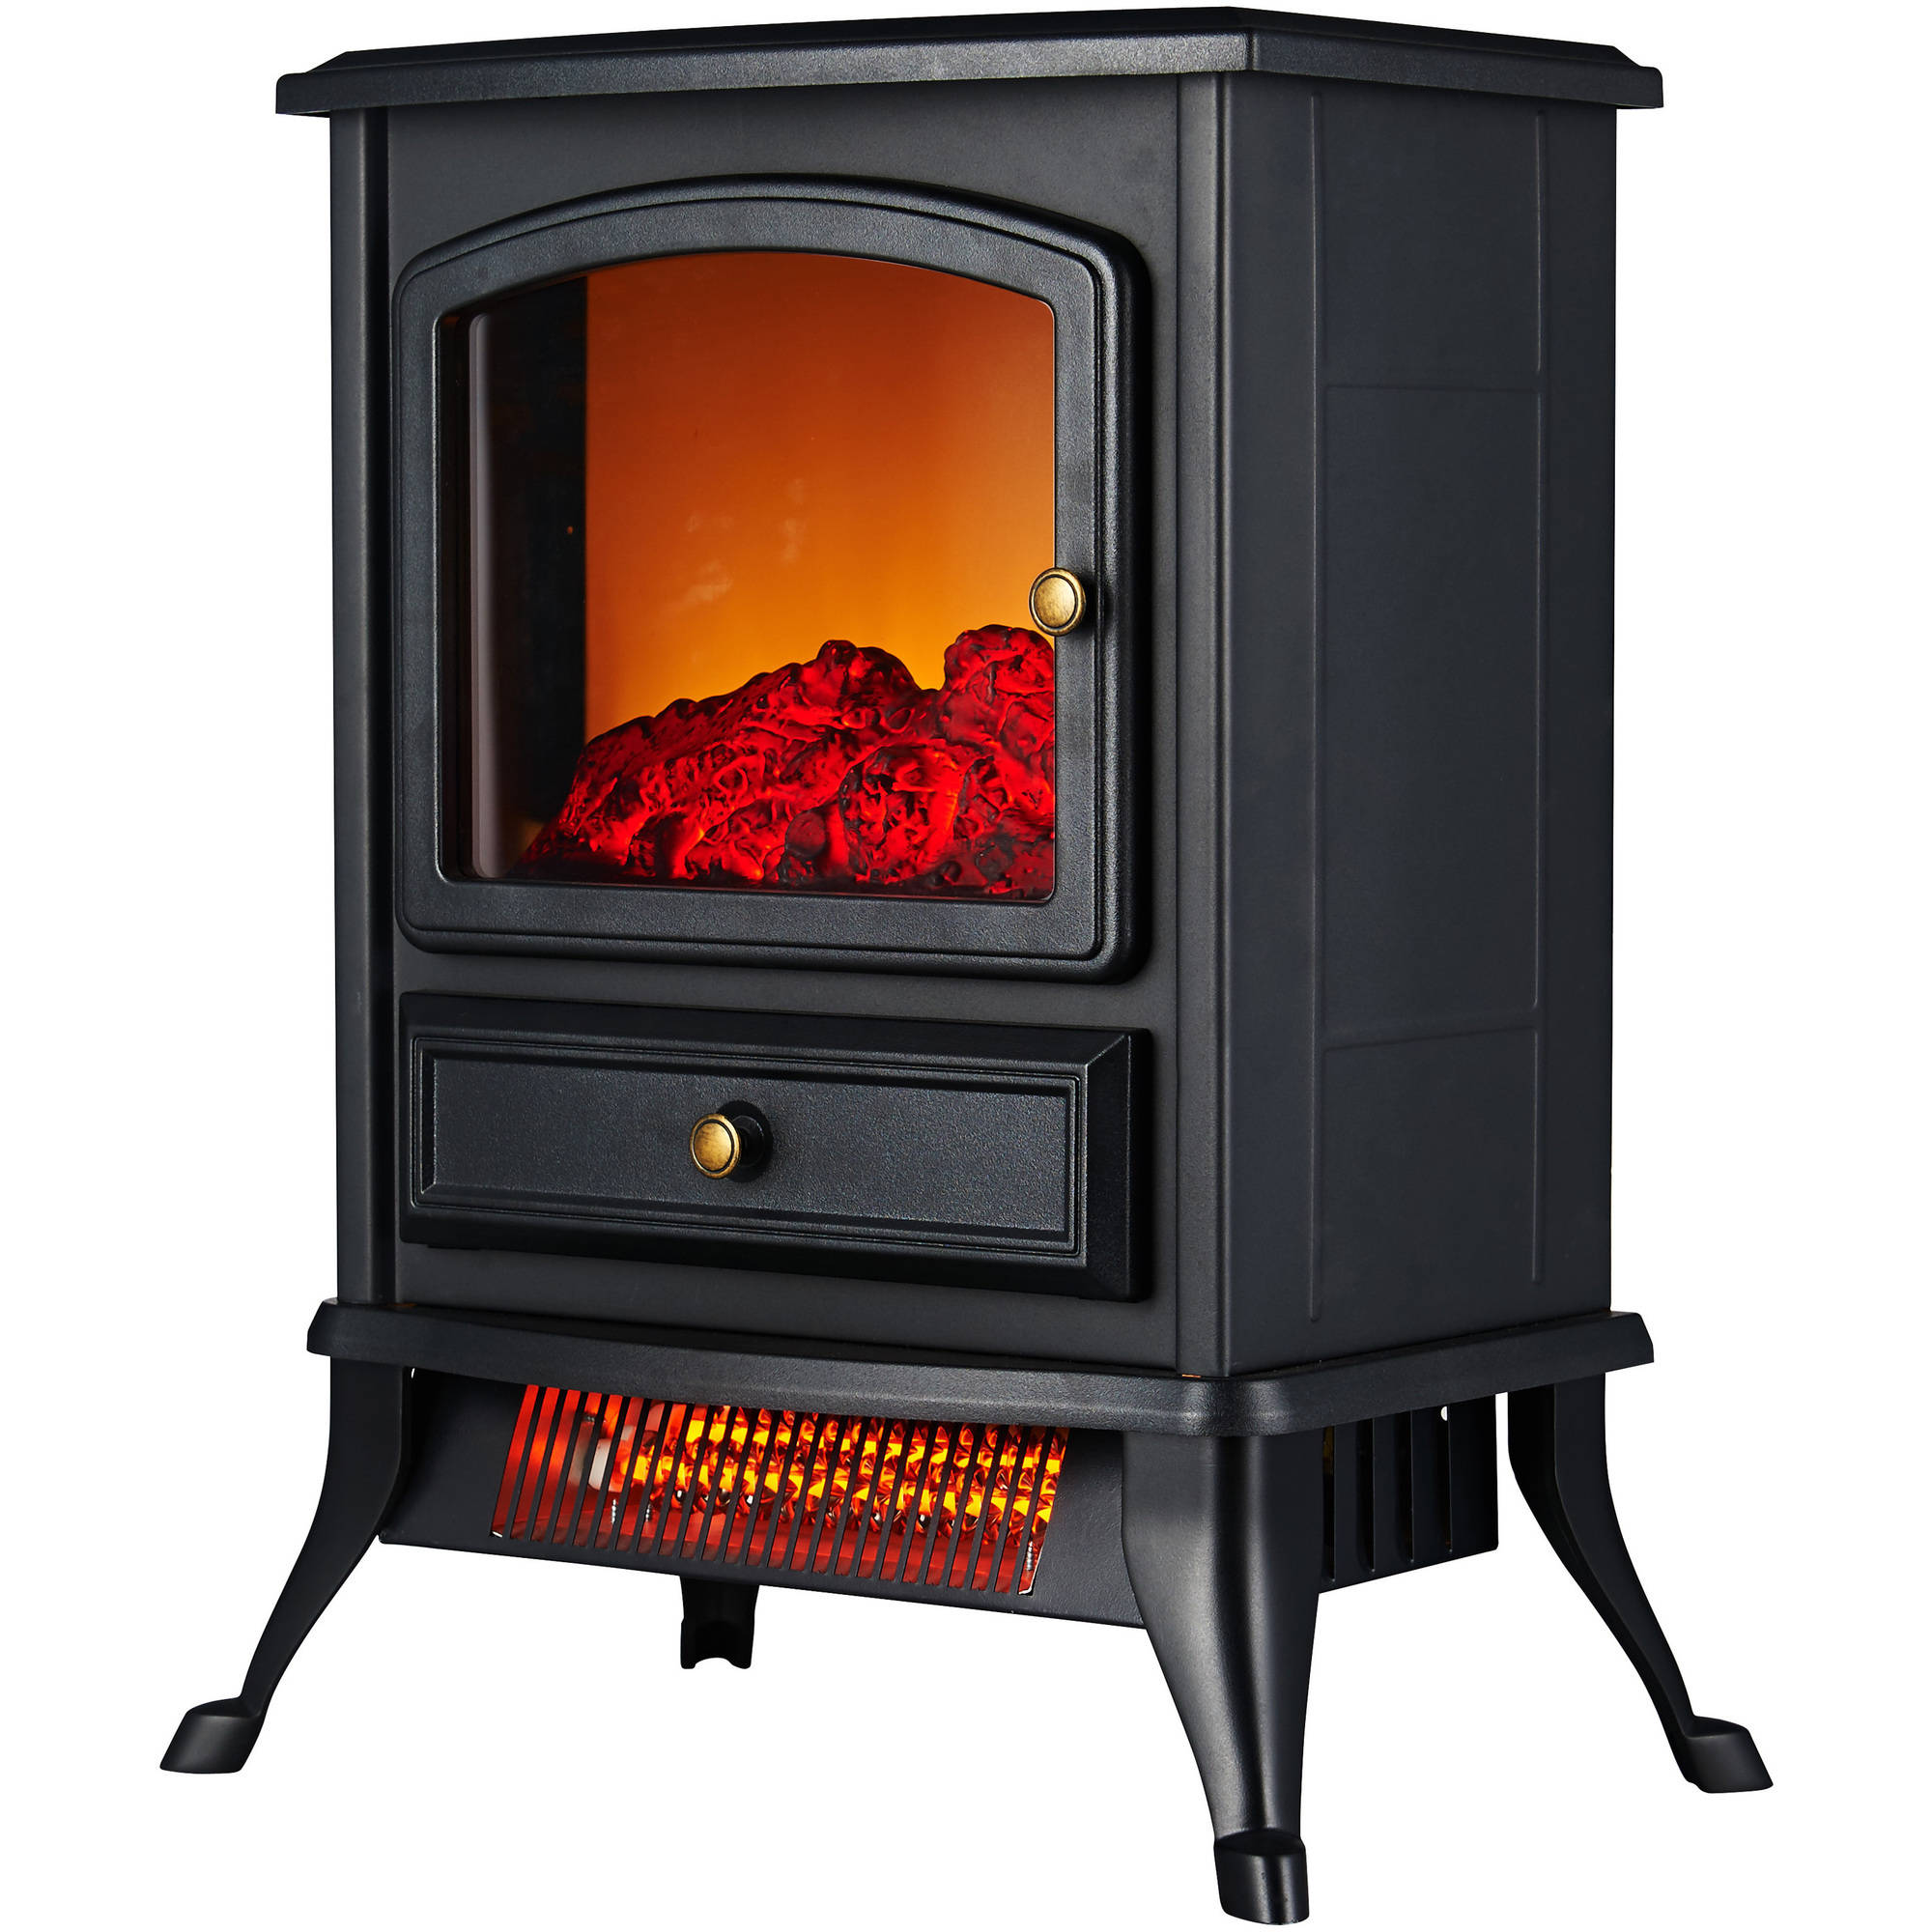 Free Shipping. Buy Warm Living Portable Infrared Quartz Home Fireplace Stove Heater at Walmart.com